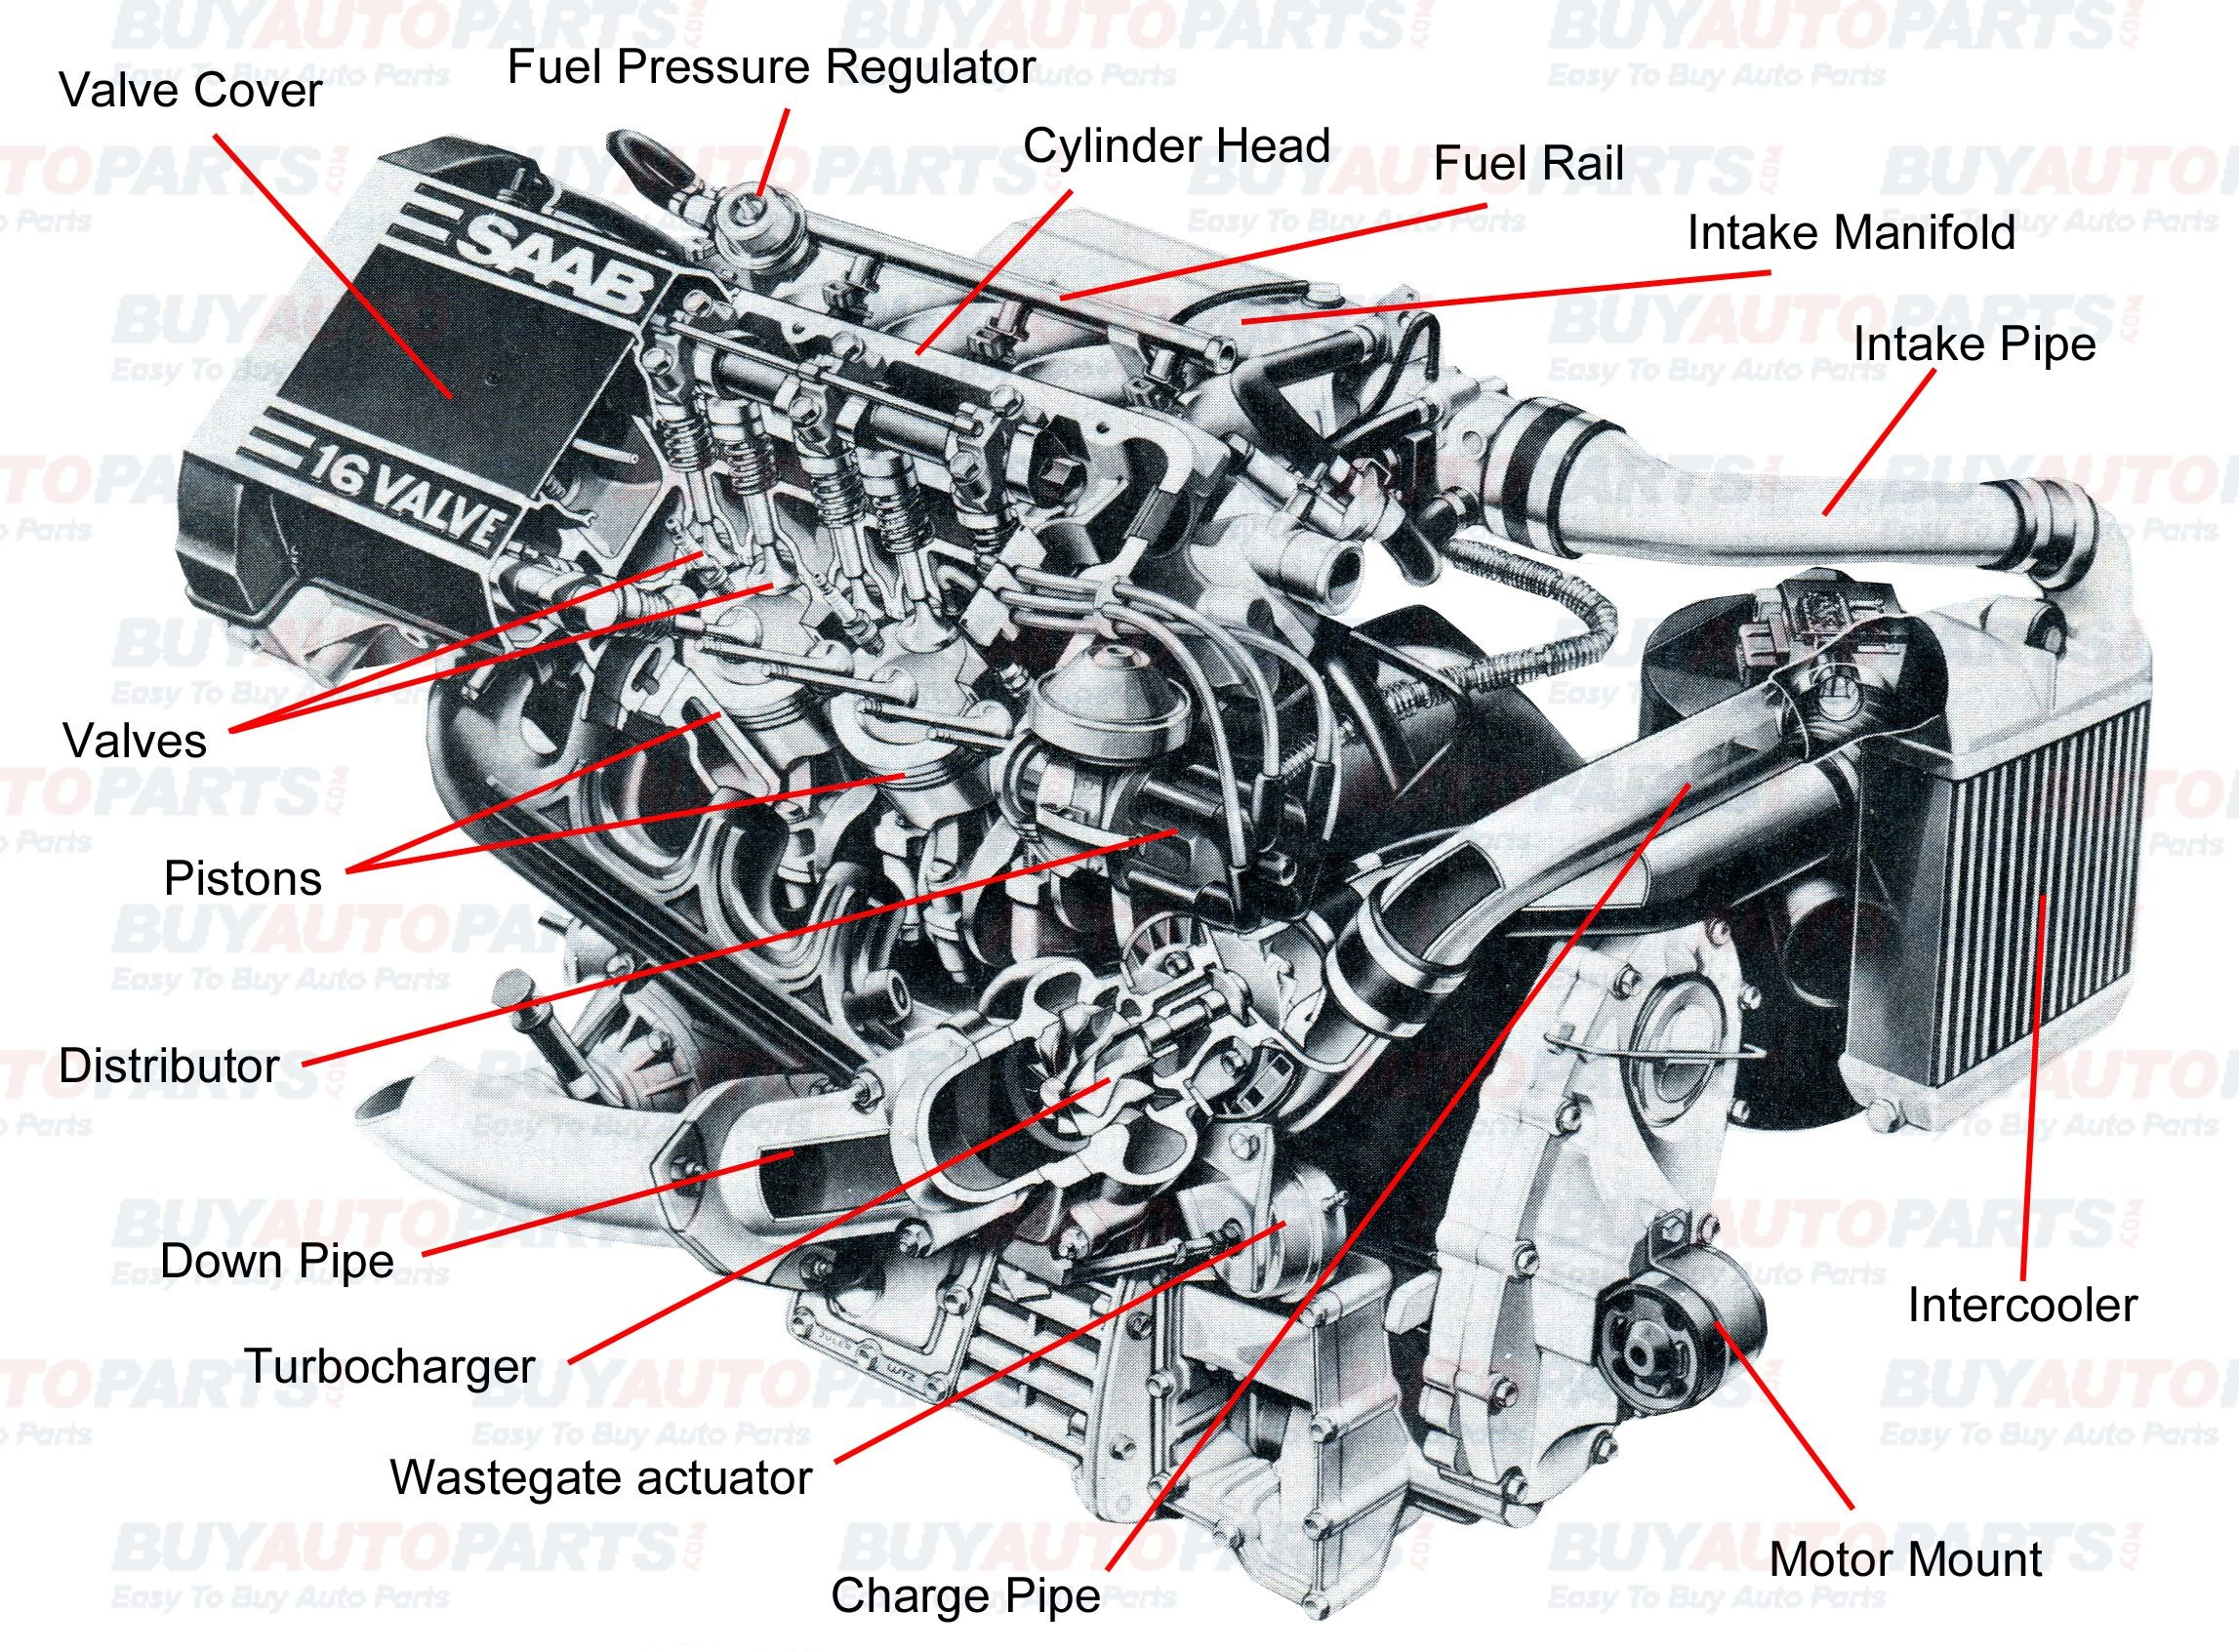 Parts Of A Car Diagram All Internal Bustion Engines Have the Same ...